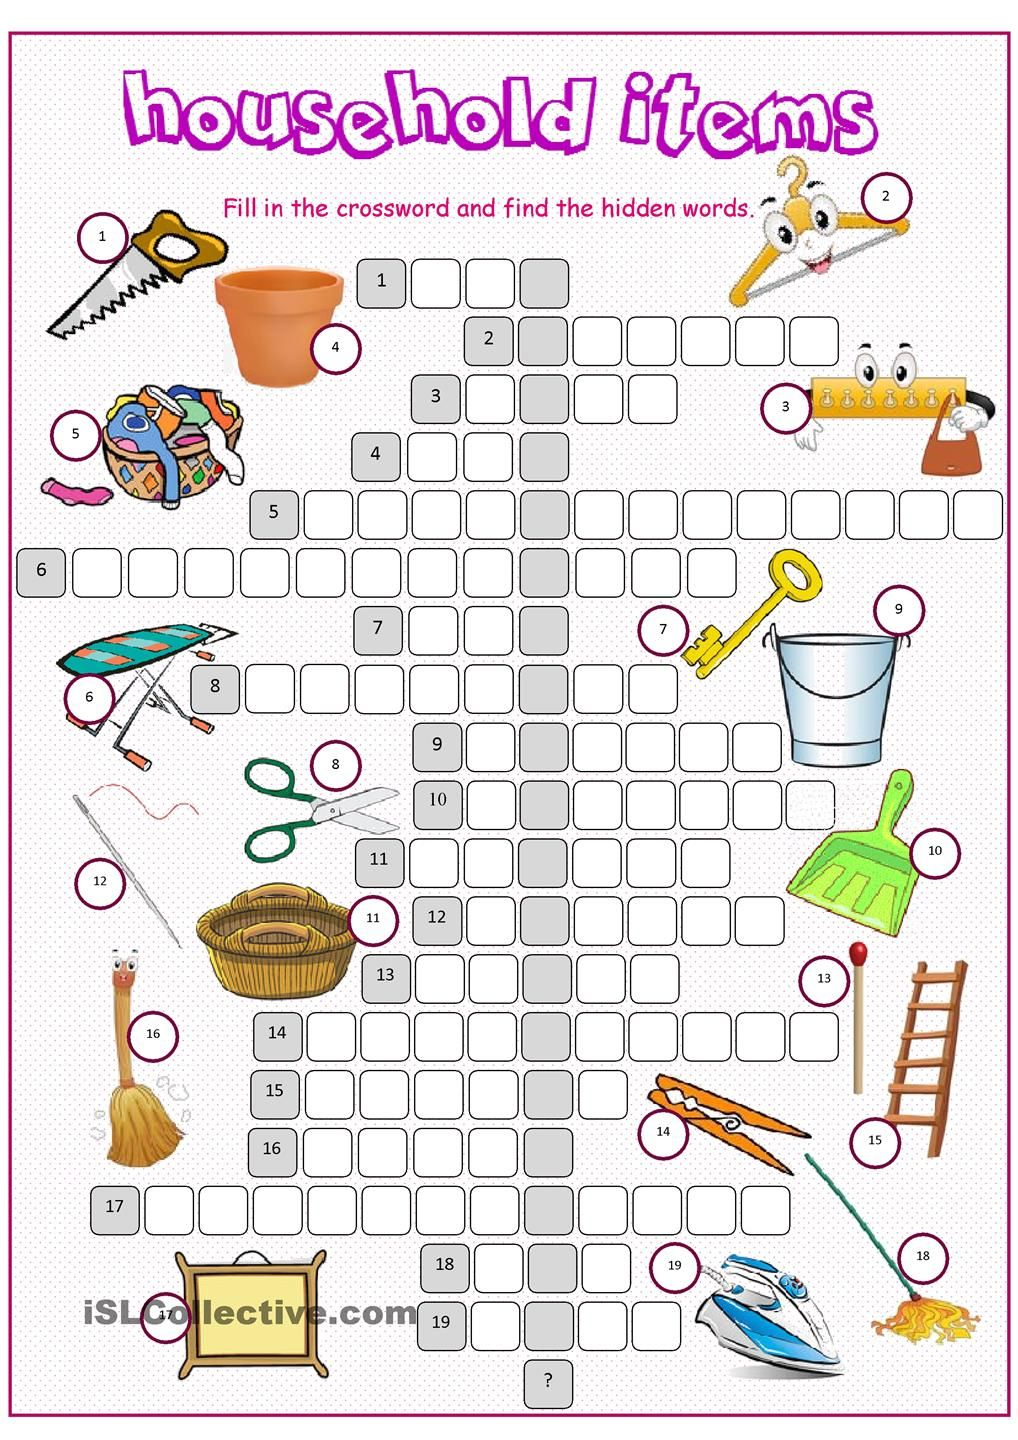 Household Items Crossword Puzzle | Esl - Vocabulary - House - Printable Esl Puzzles